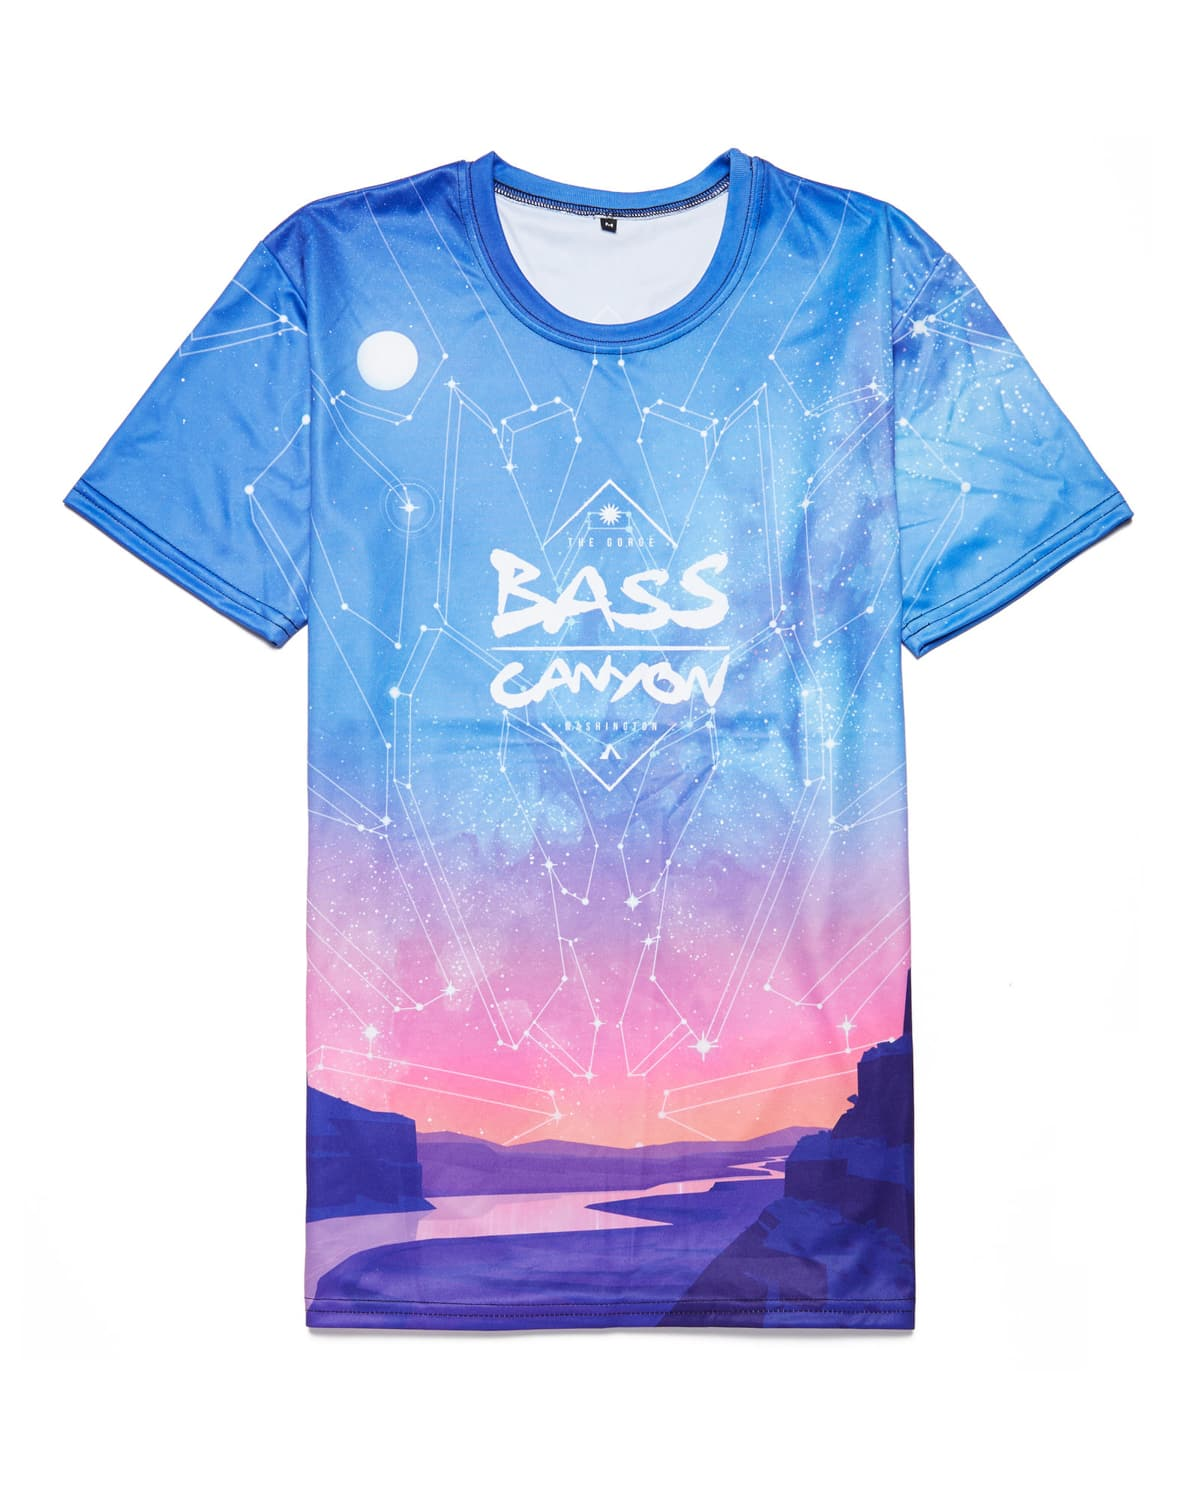 Official Bass Canyon 2018 'Sunset' Tee - Blue/Pink